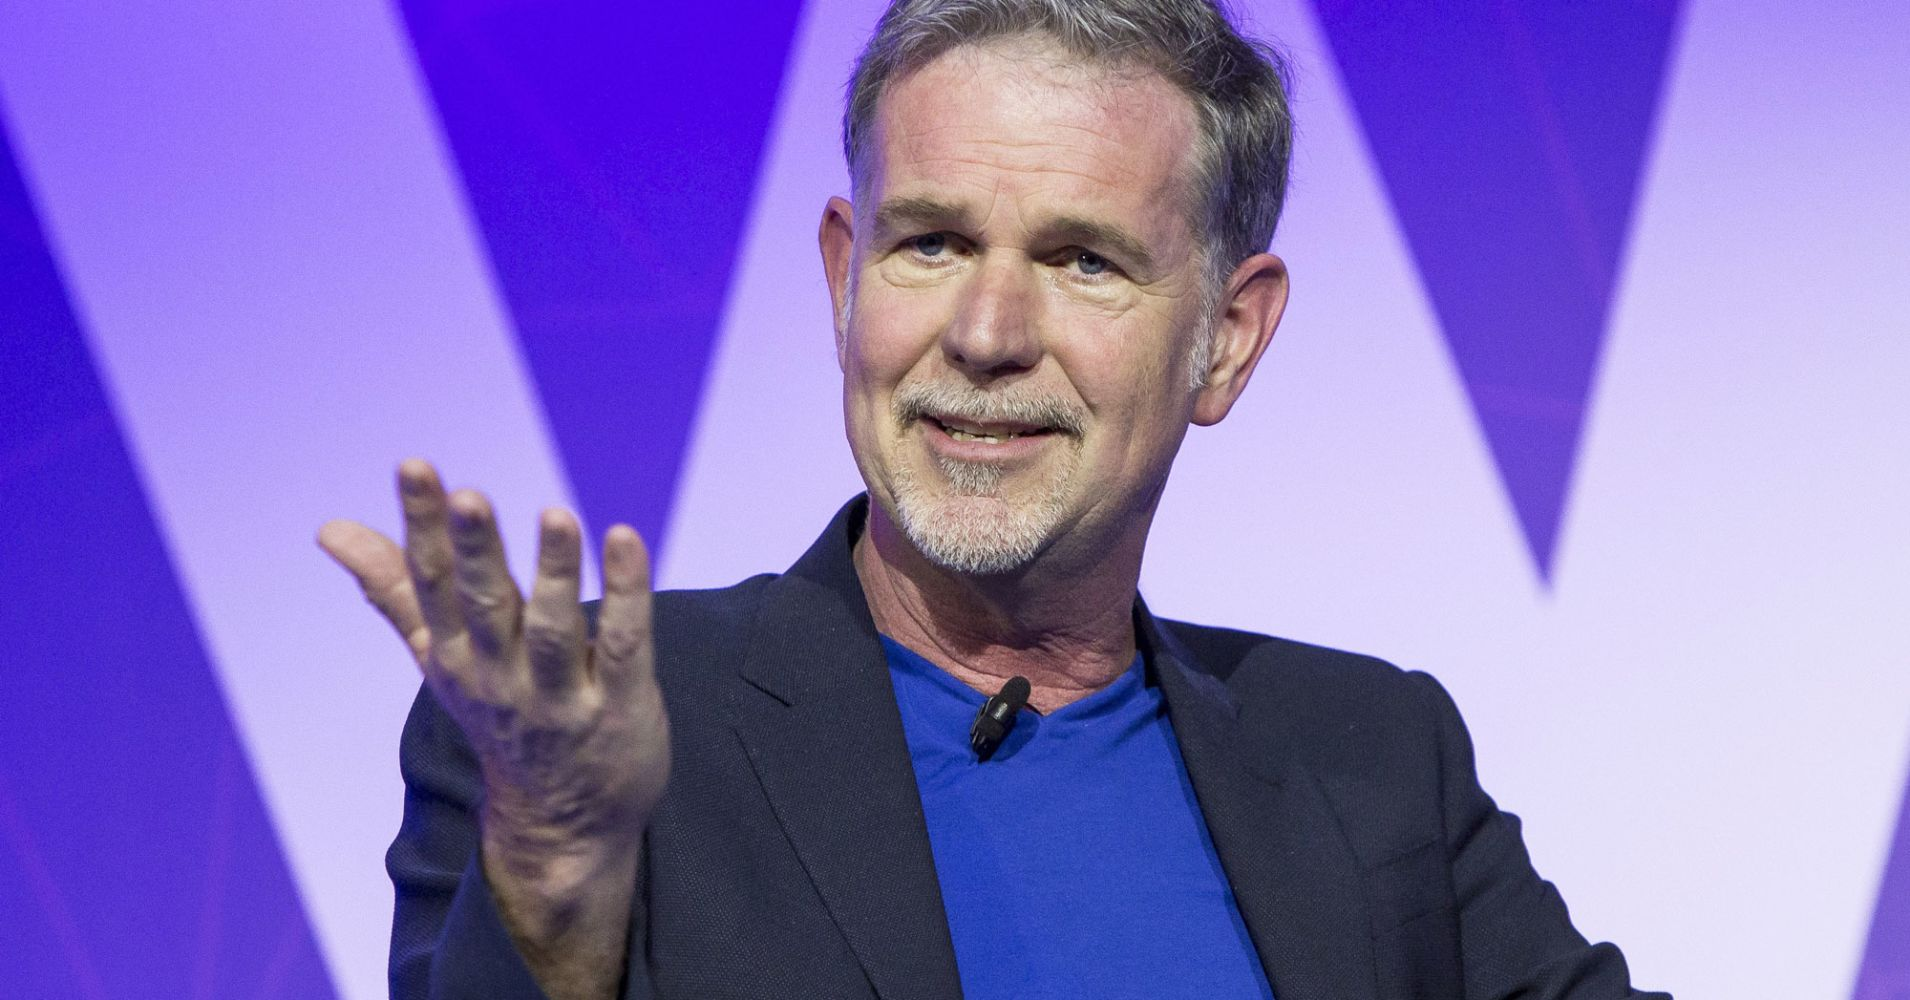 Netflix is raising prices and the stock is soaring